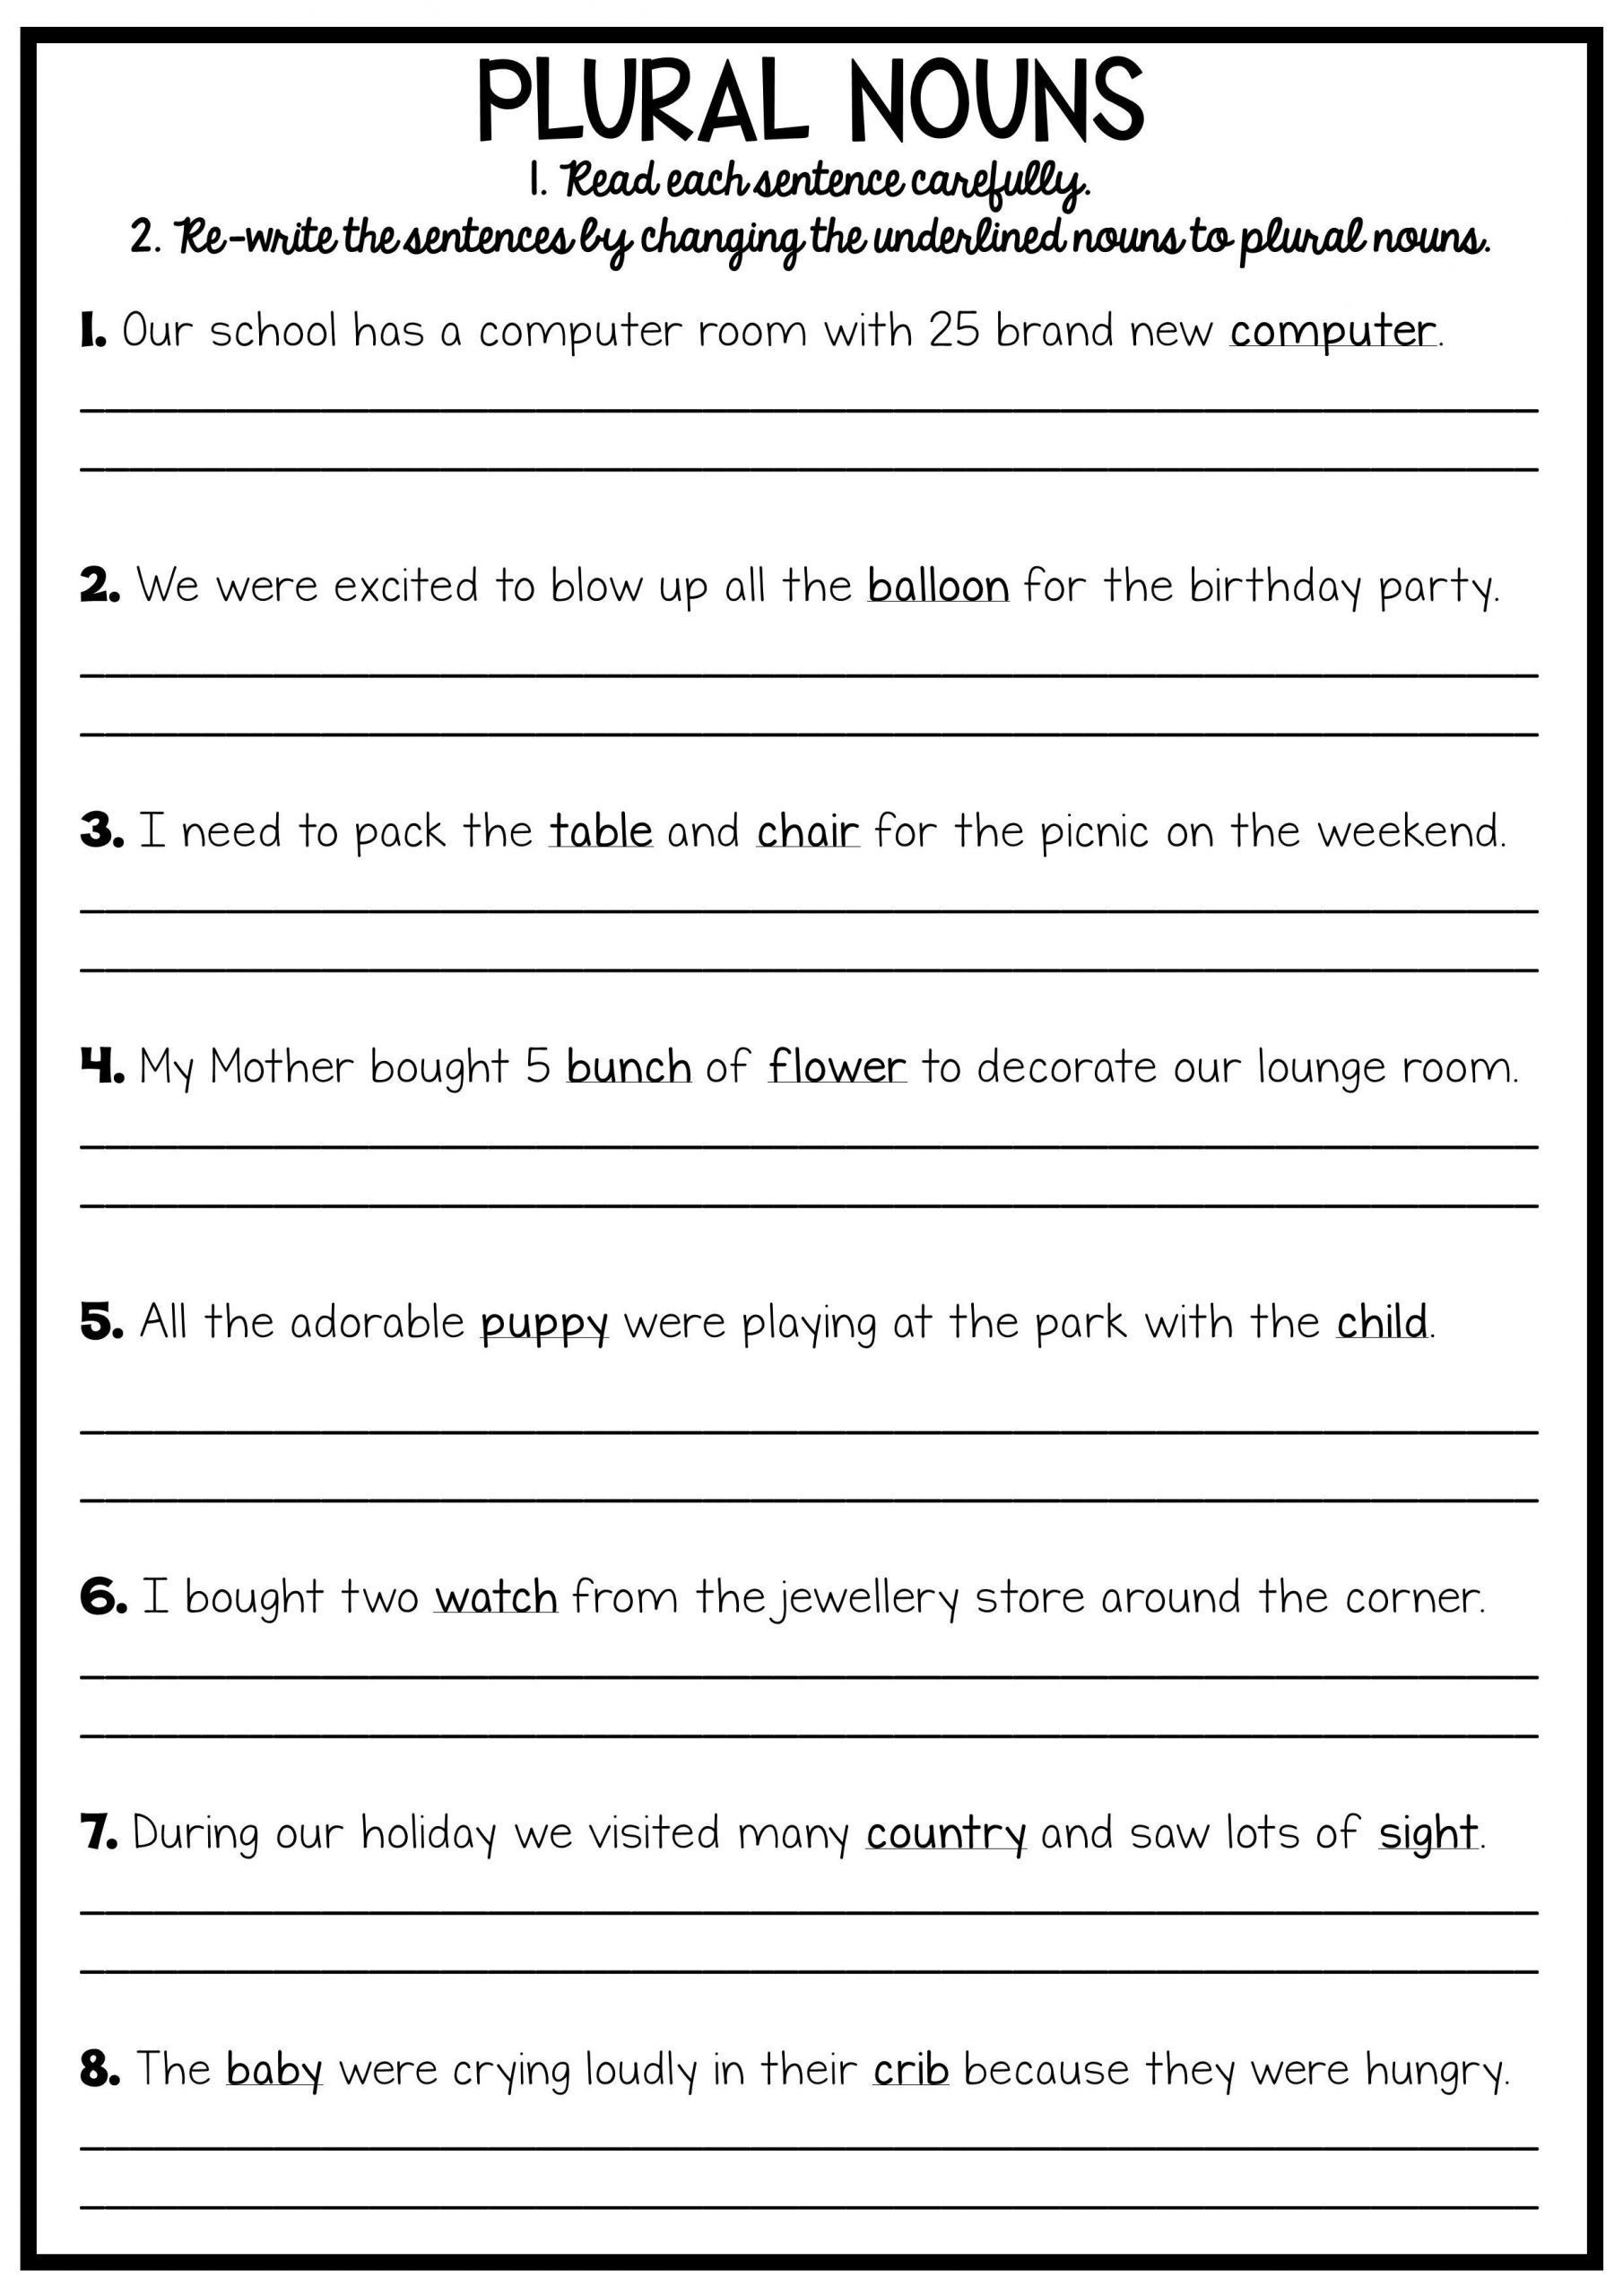 Grammar Worksheets 6th Graders 2 Pronoun Worksheets for 6th Graders Printable Reading and